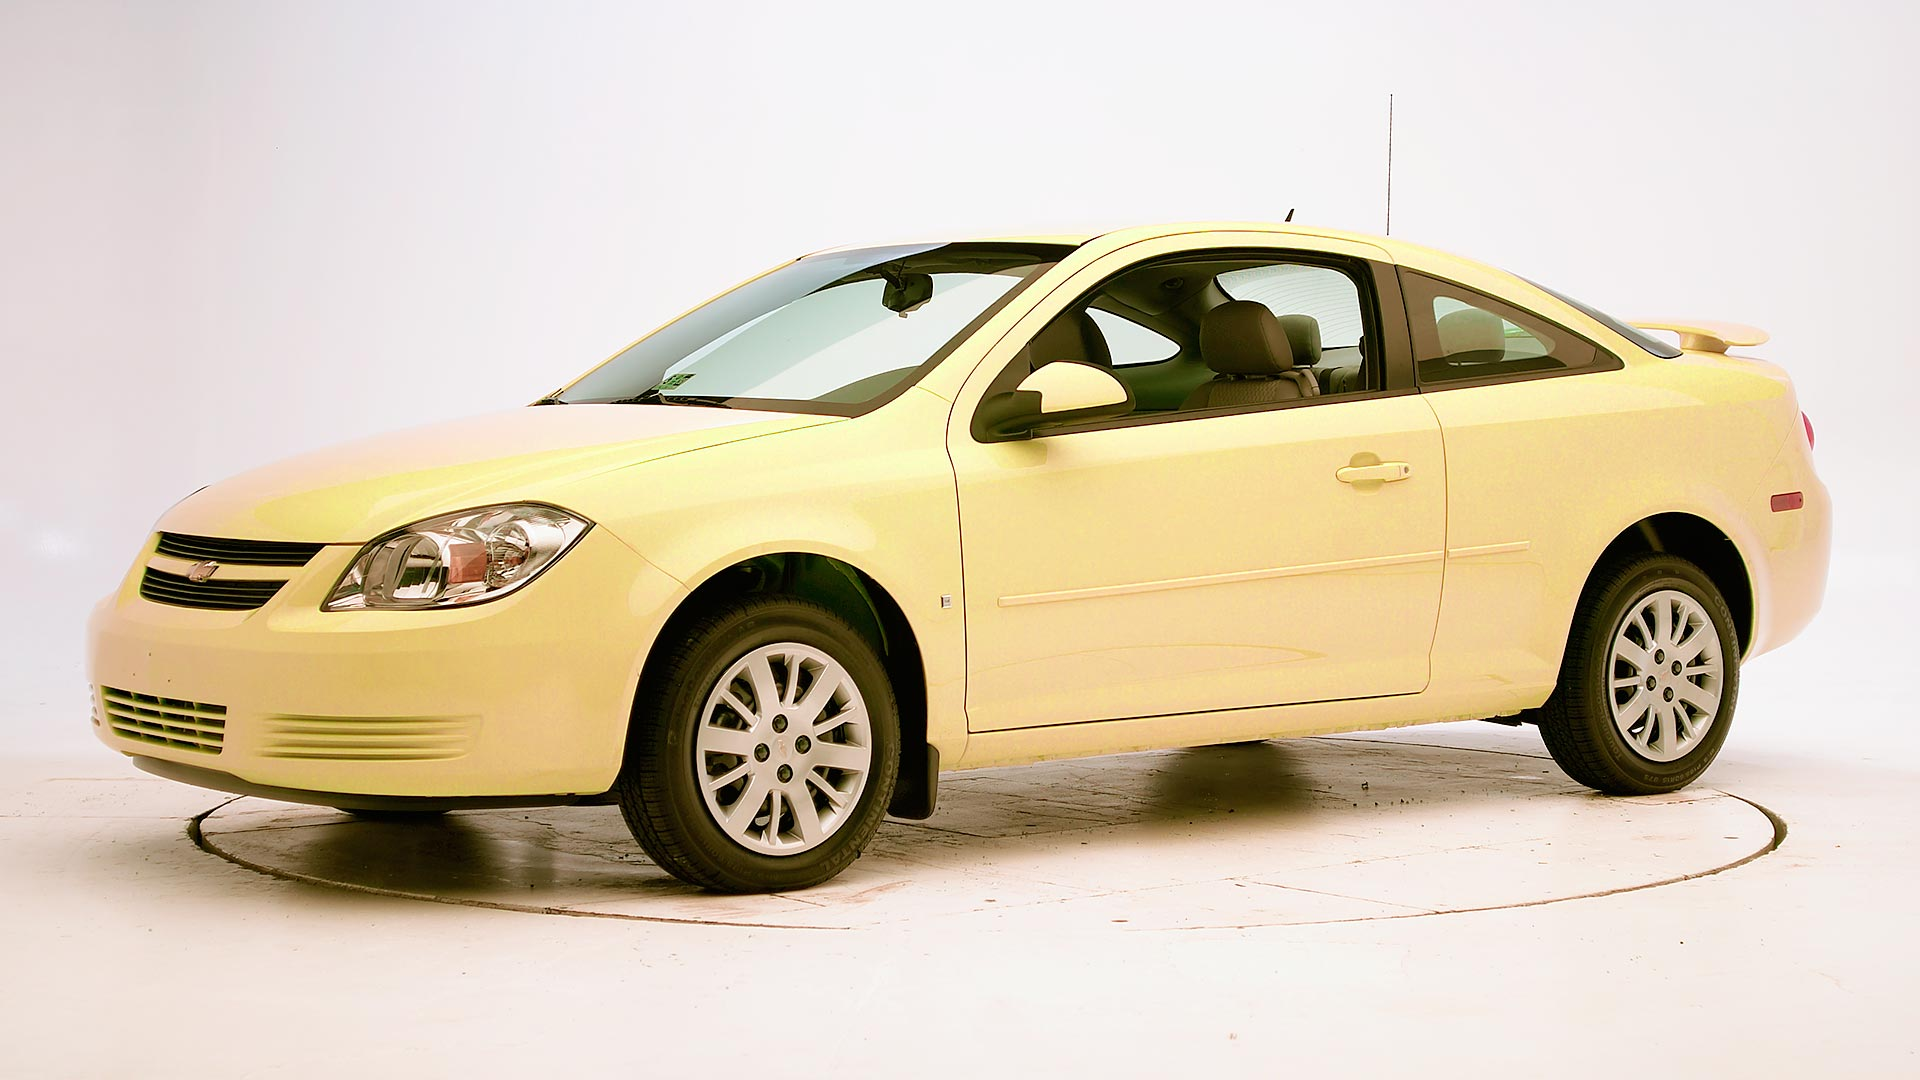 2009 Chevrolet Cobalt 2-door coupe